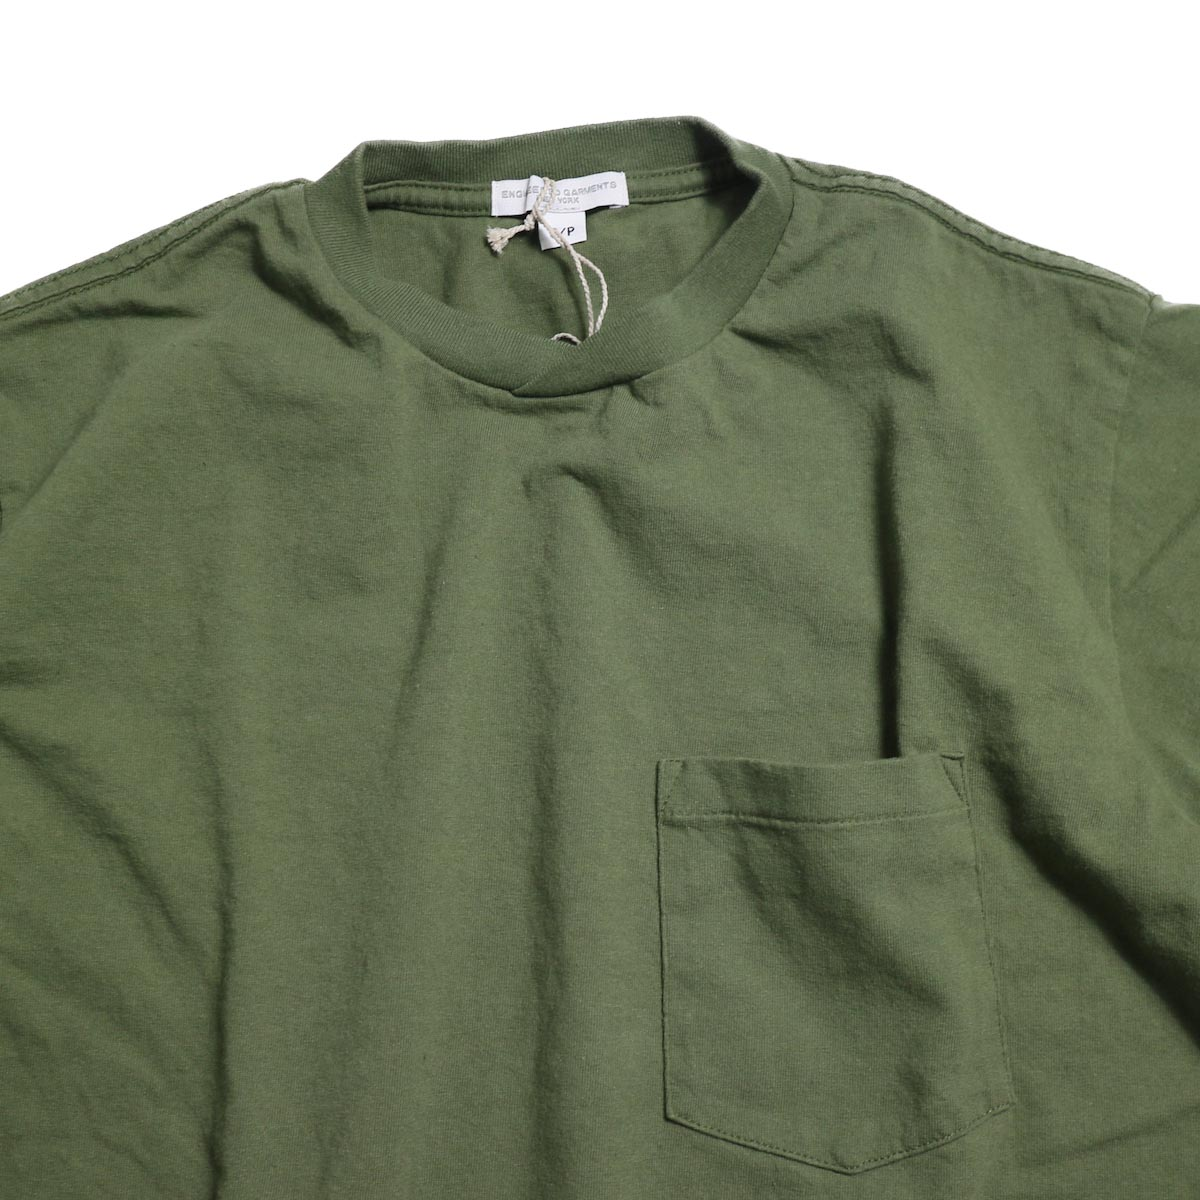 ENGINEERED GARMENTS Workaday / Crossover Neck Pocket Tee -Olive クロスネック